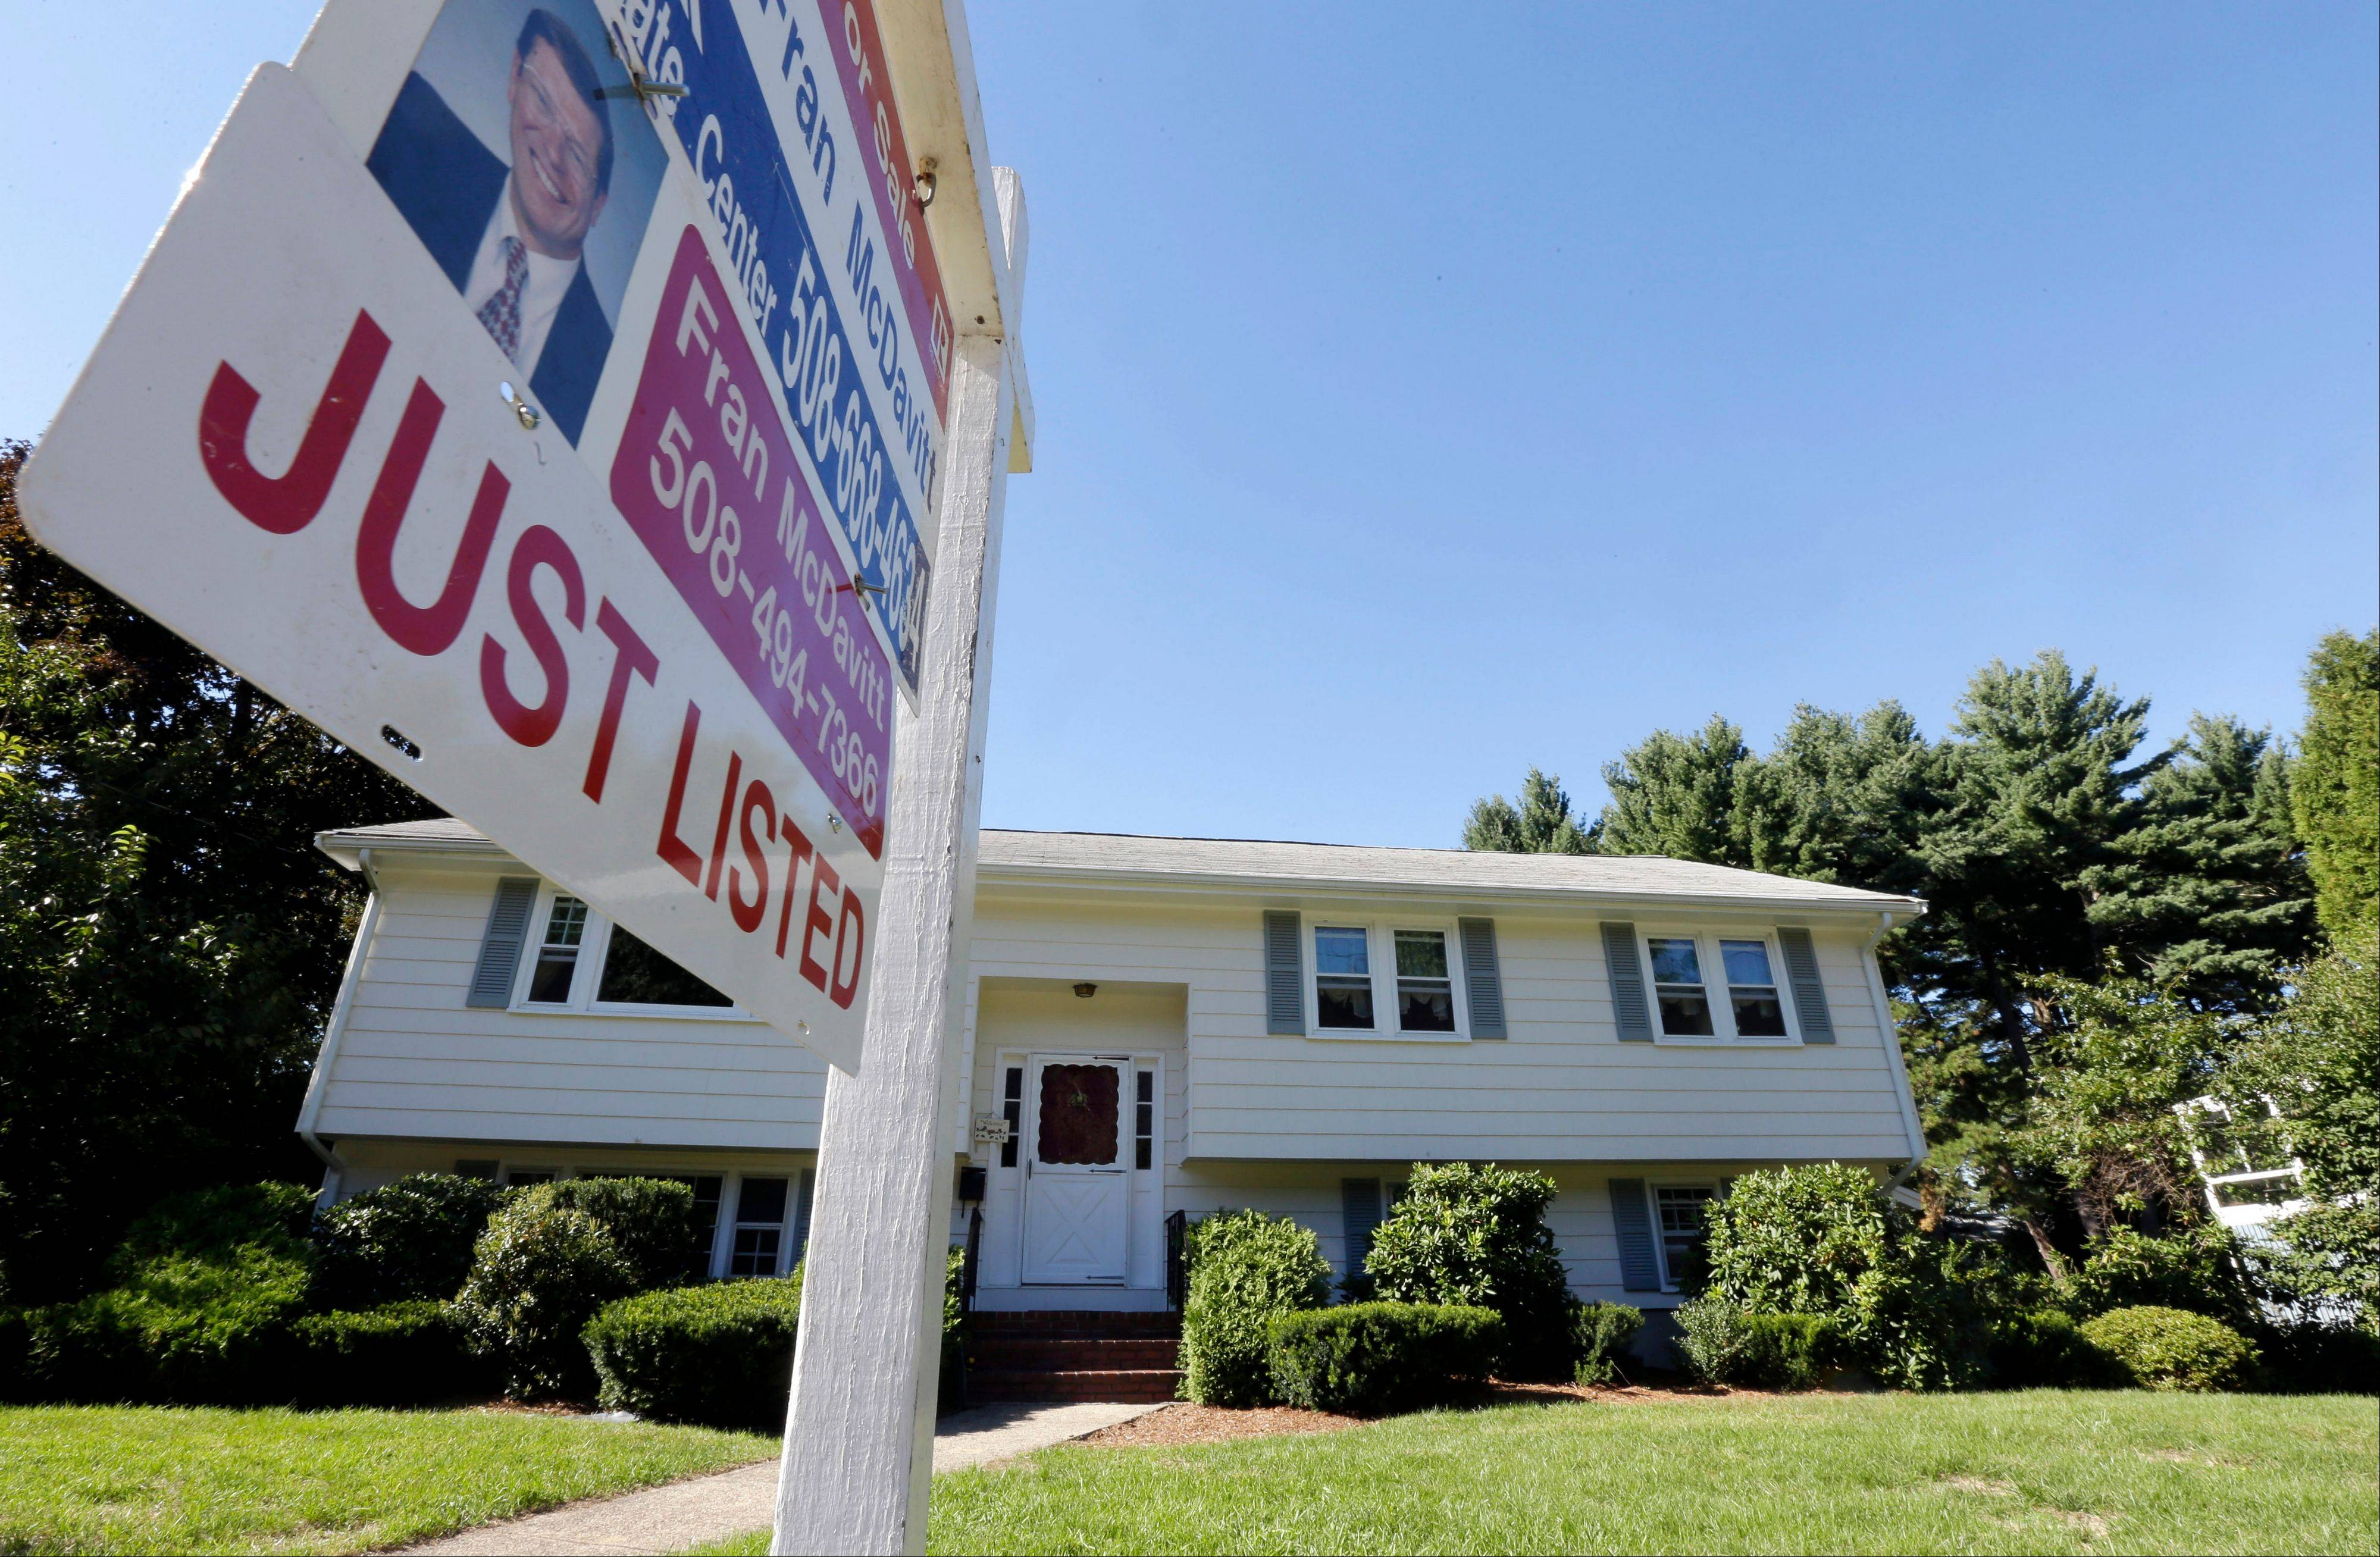 U.S. home prices rose in August from a year earlier at the fastest pace since February 2006. But the price gains slowed in many cities from July, a sign that the spike in prices over the past year may have peaked.